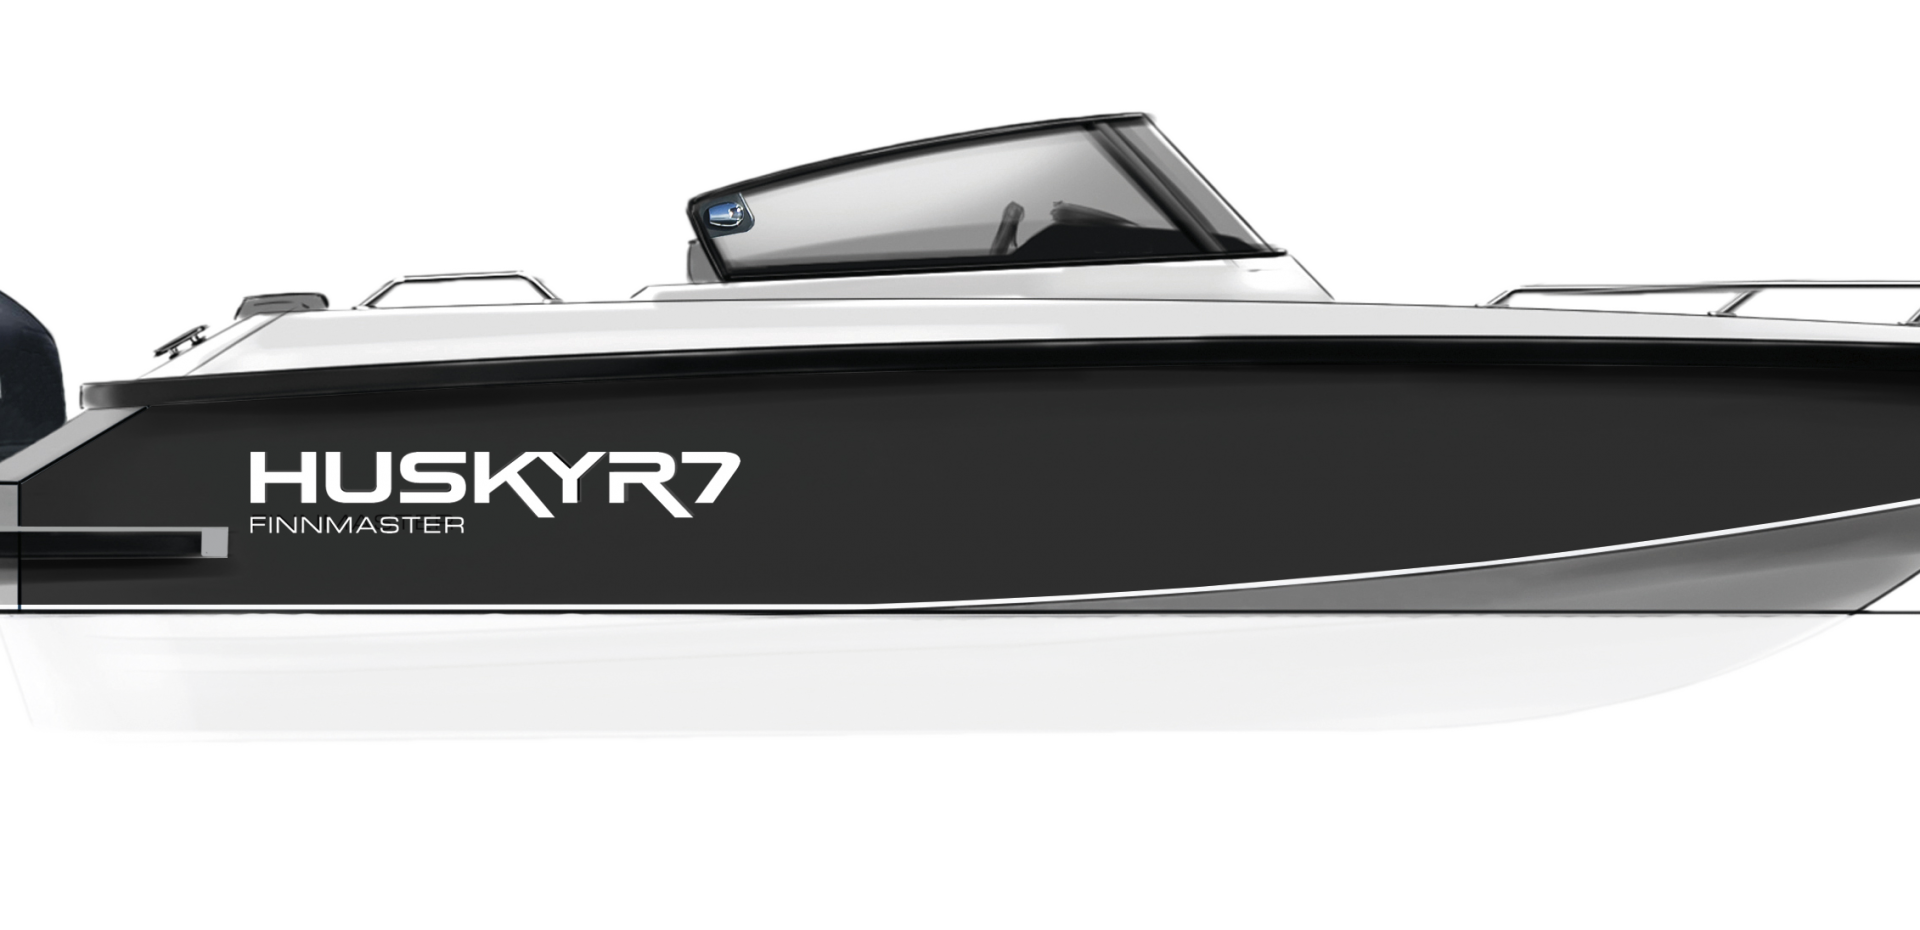 Aluminium Boat FINNMASTER HUSKY R7 - The perfect family boat